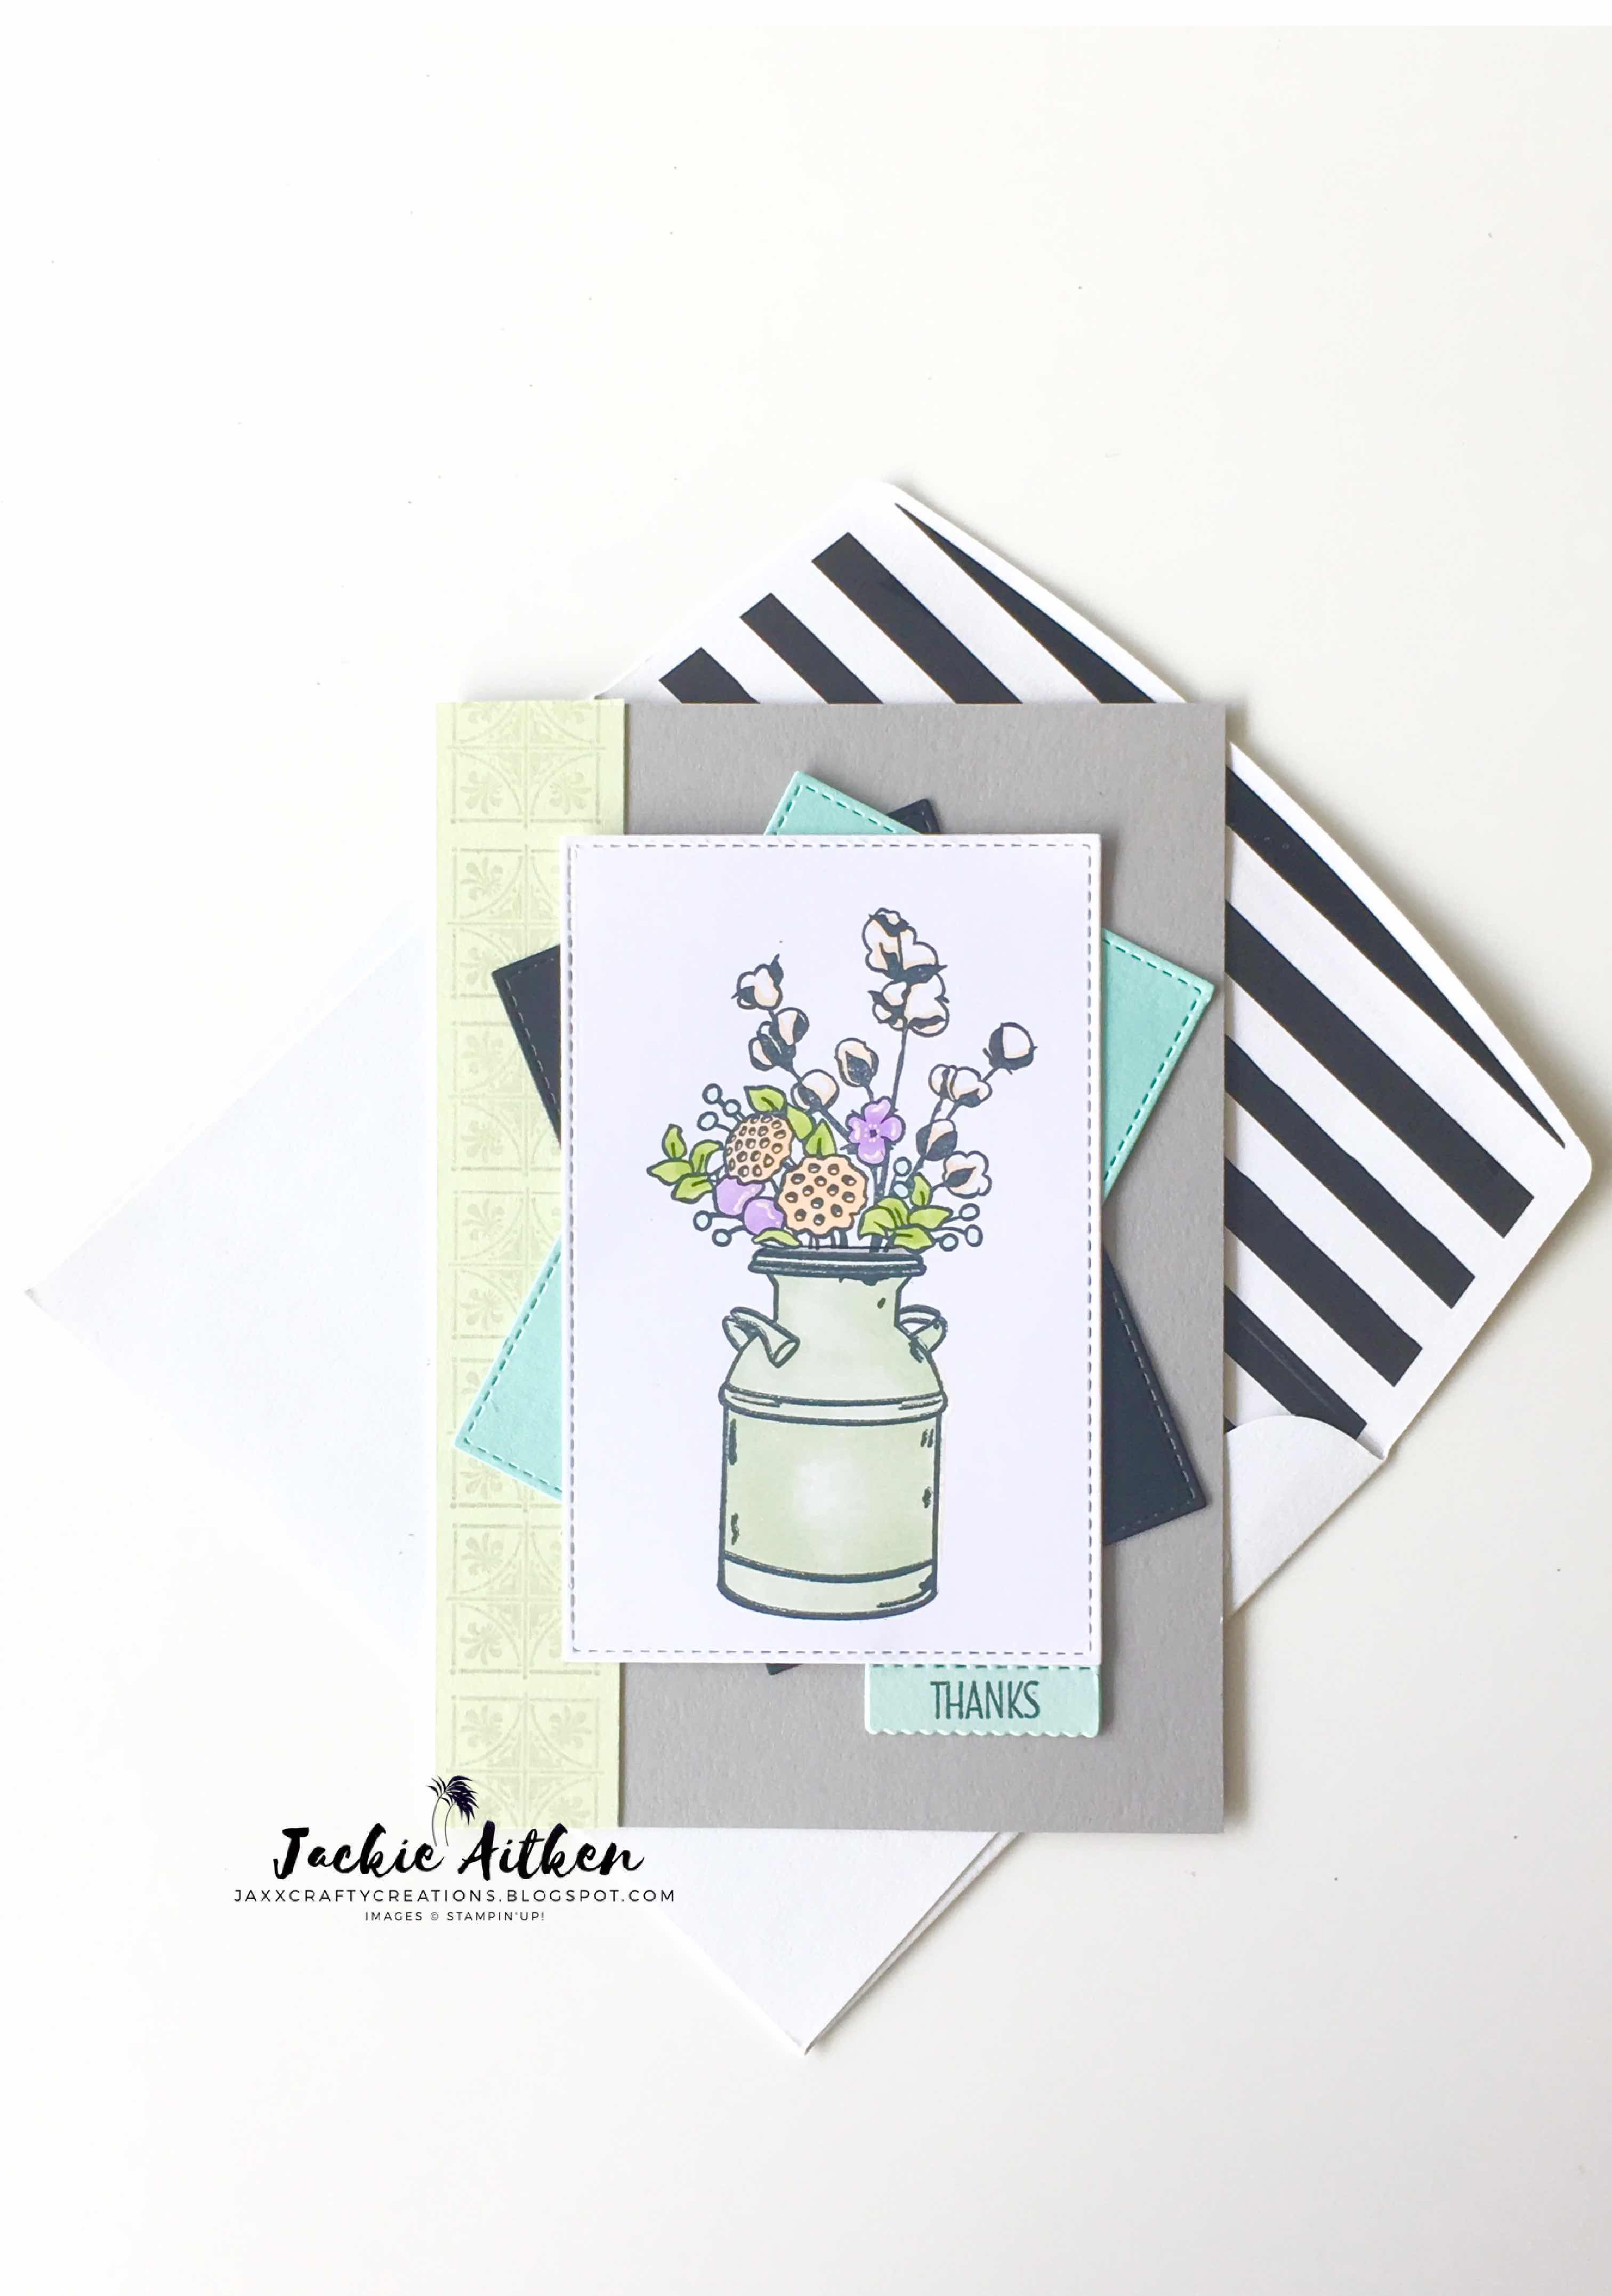 Jaxx Crafty Creations, Country Home stamp set, stampin up, stitched cards